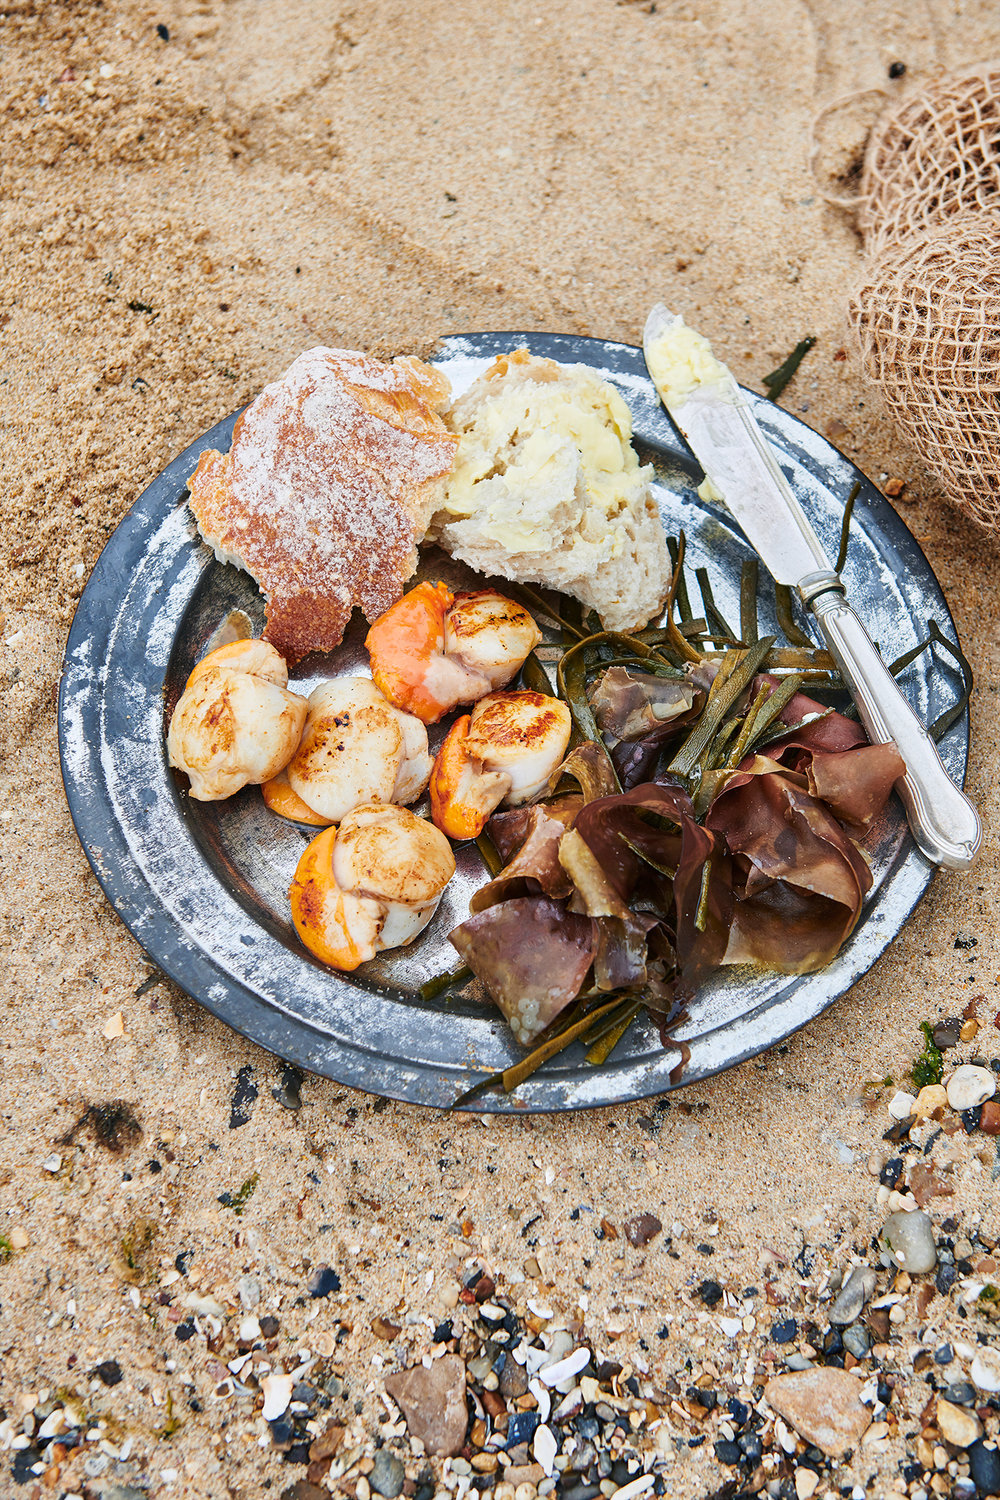 scott grummett food drink photographer london documentary sea beach lucy ruth hathaway jess elcock jessica esse bbq barbecue fish seafood sea food shellfish mackerel mussels prawns bass fillet cooking cook cookbook recipe doc documentary photographer photography beach coast coastal erosion trees tree cliff crate deckchair deck chair hamper hampers lantern grill griddle mussel mussels colainder colander seabass bass sea fire cooking smoke bbq barbecue wood coals coal charcoal scallop scallops seaweed pebbles pebble prawn prawns king tiger shelling griddle fry